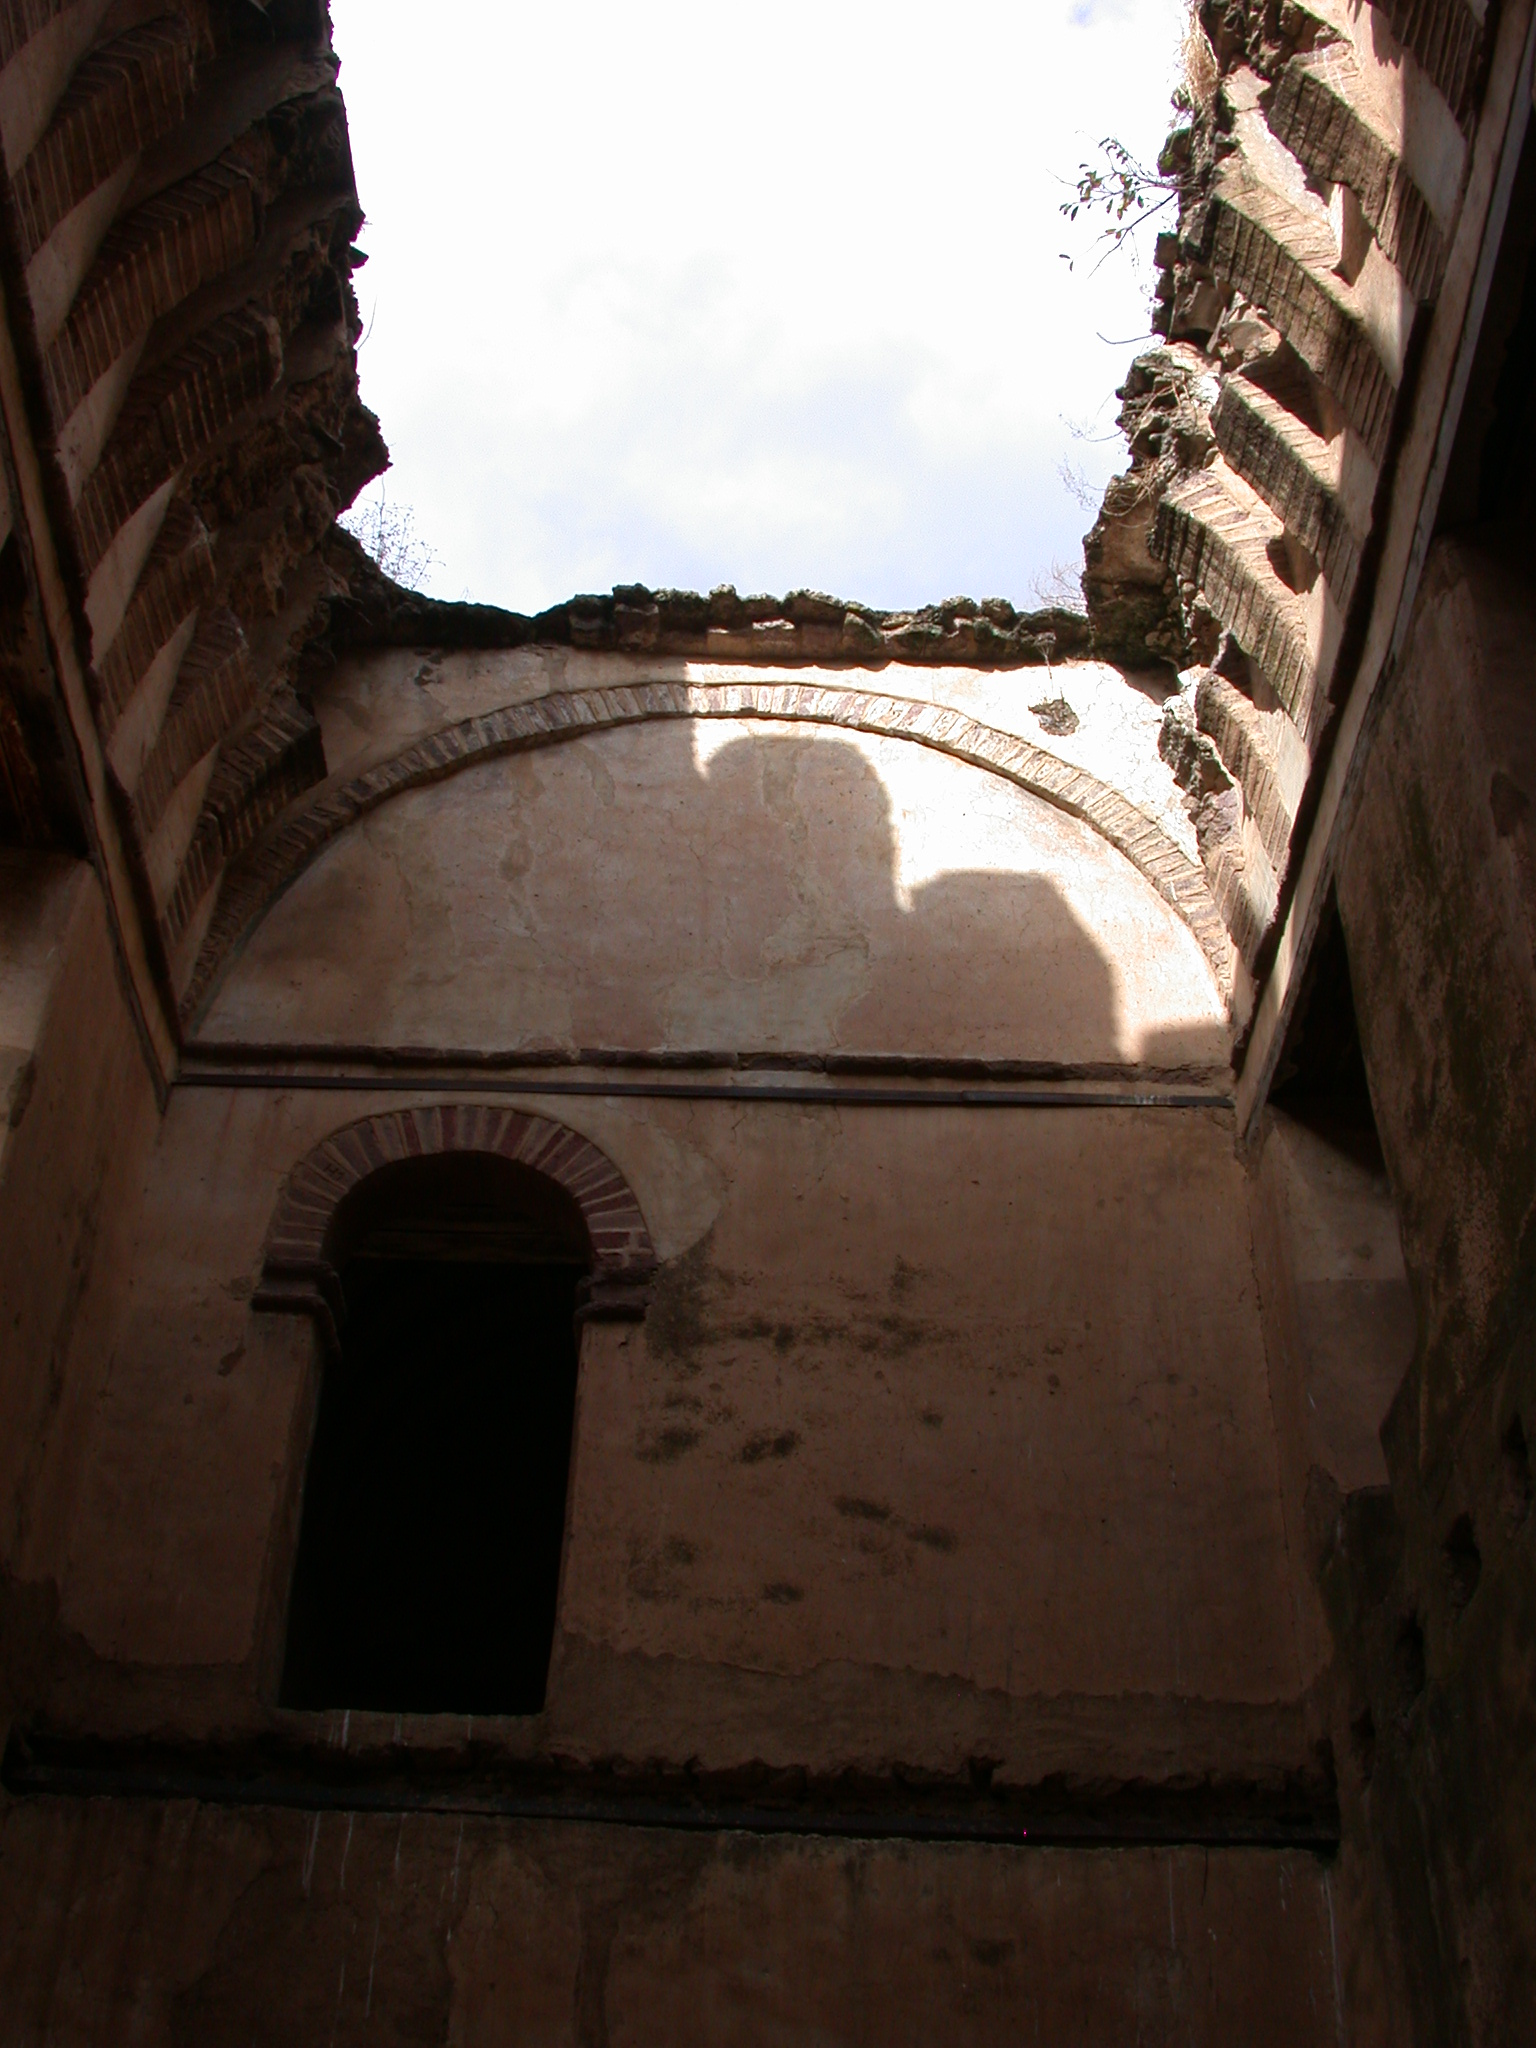 Fallen Roof of Palace, Fasil Ghebbi Royal Enclosure, Gonder, Ethiopia